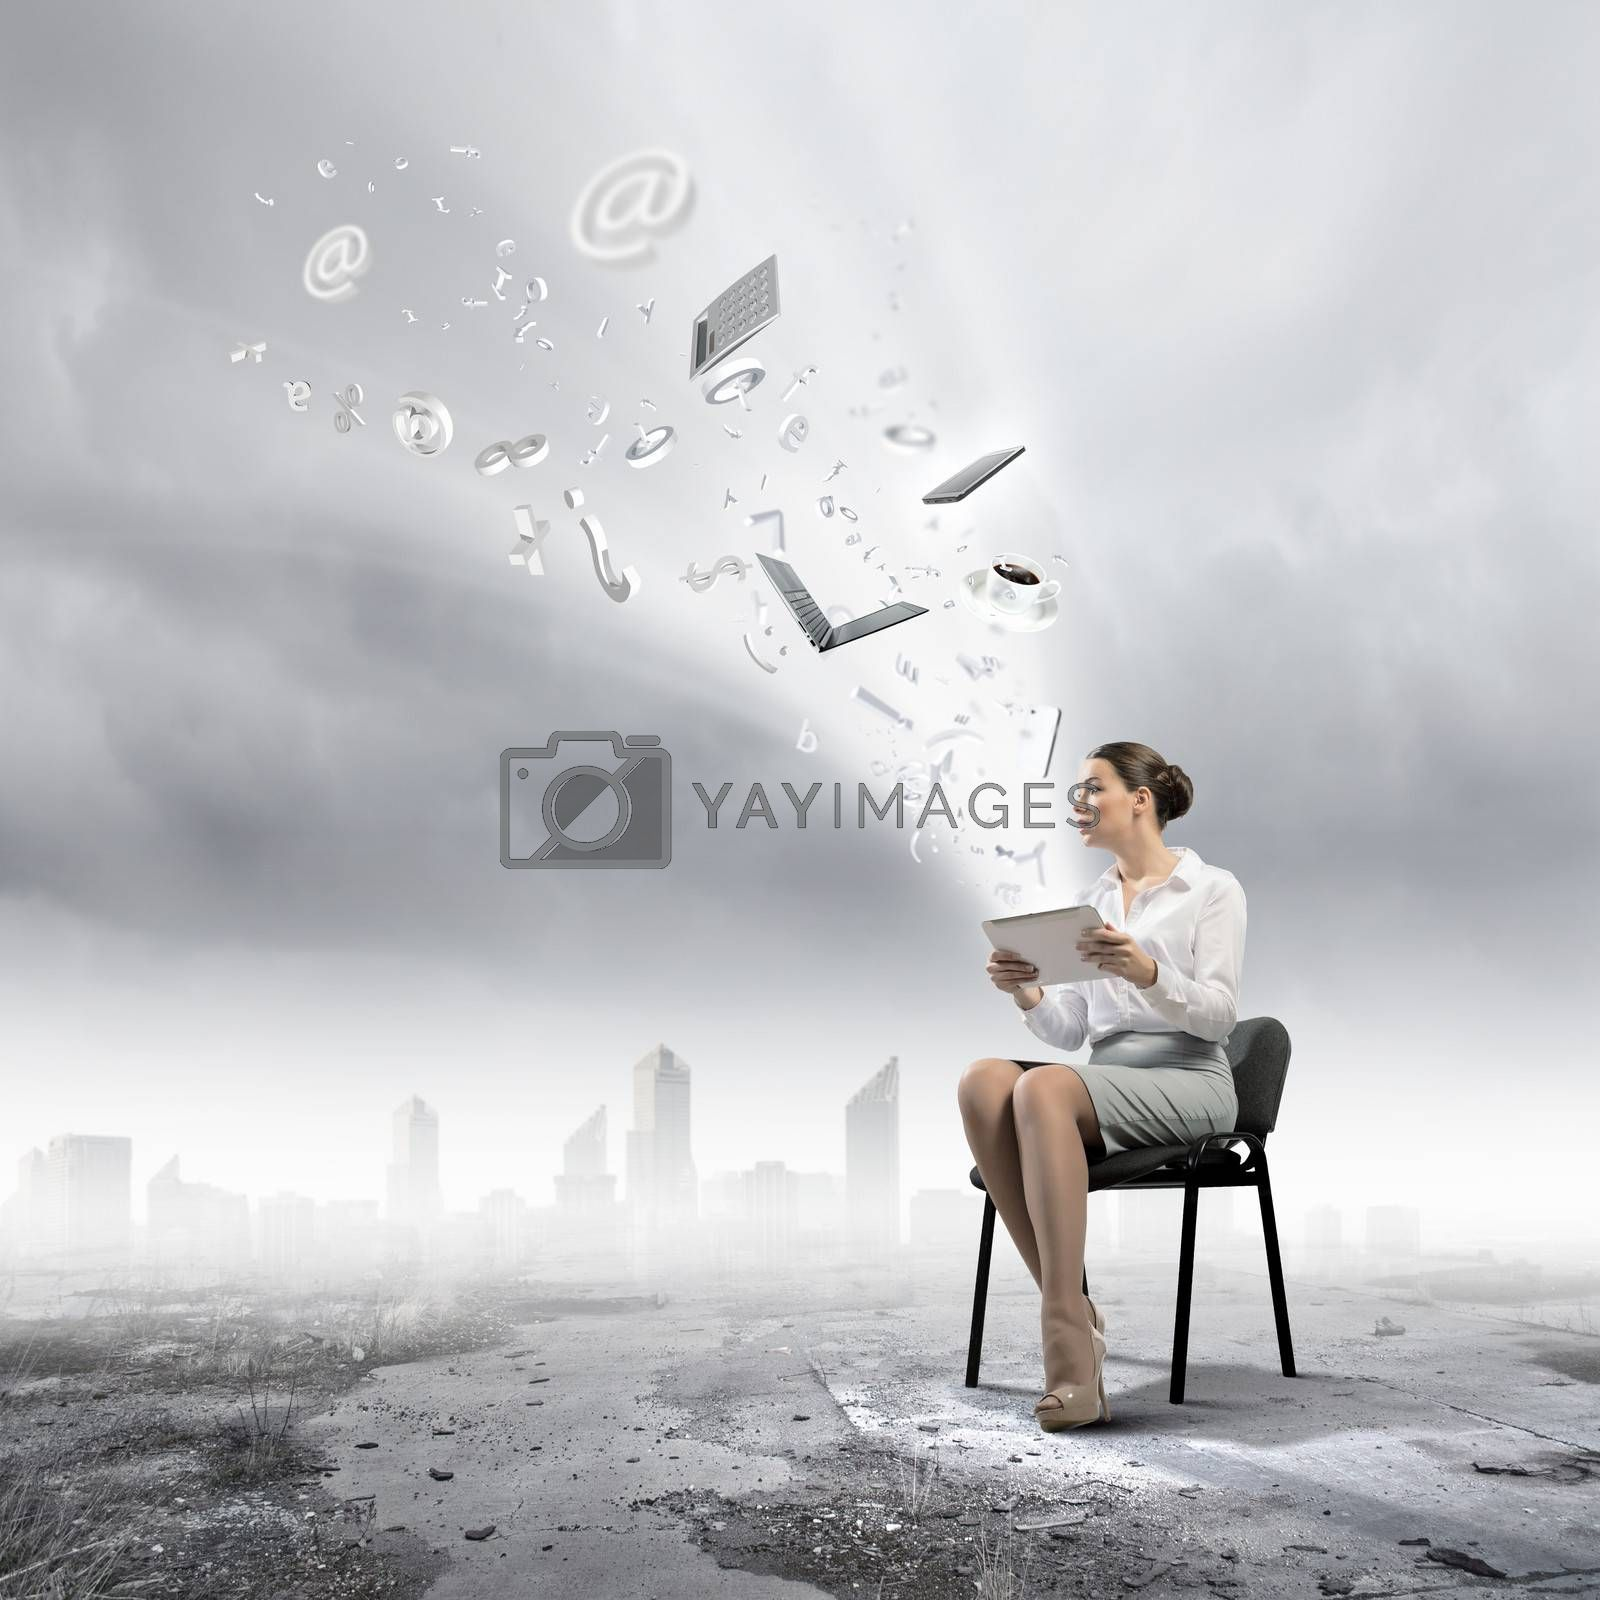 Image of businesswoman sitting on chair with tablet pc in hands